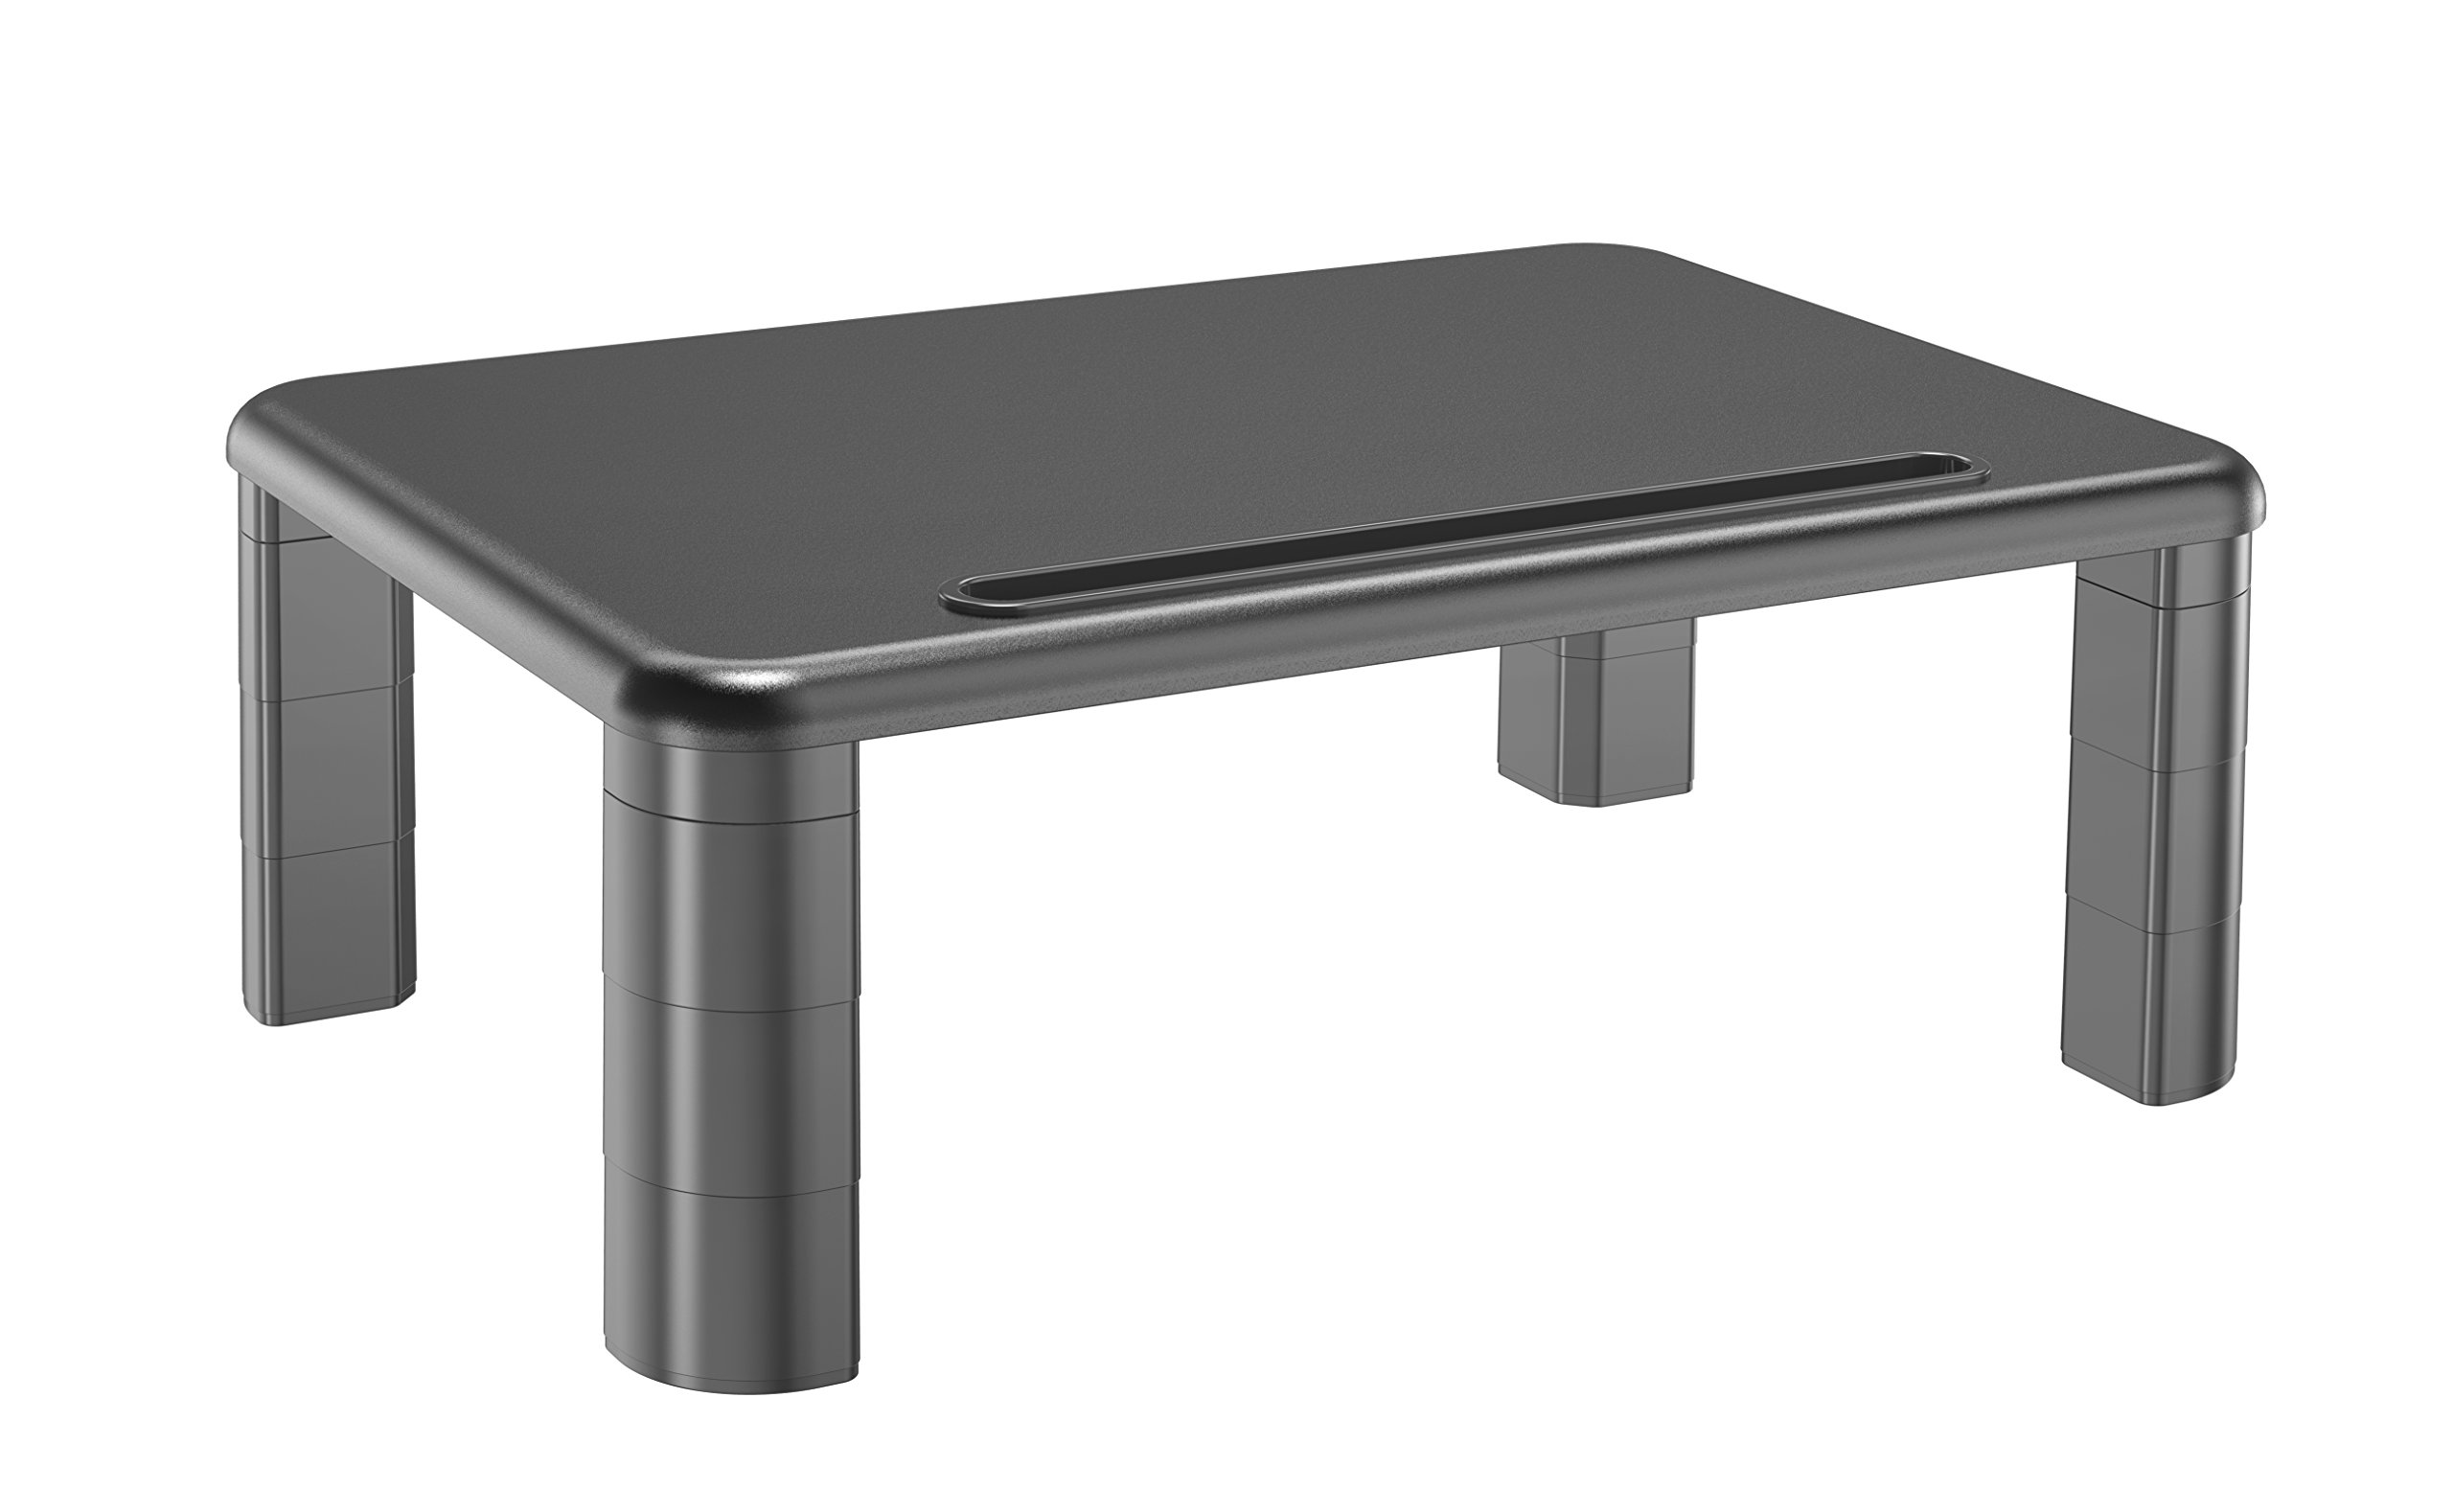 Innova - Adjustable Monitor Stand - Mini Desk, Height Range 2.7''-5.6'', Weight Capacity 22lbs (MS001)